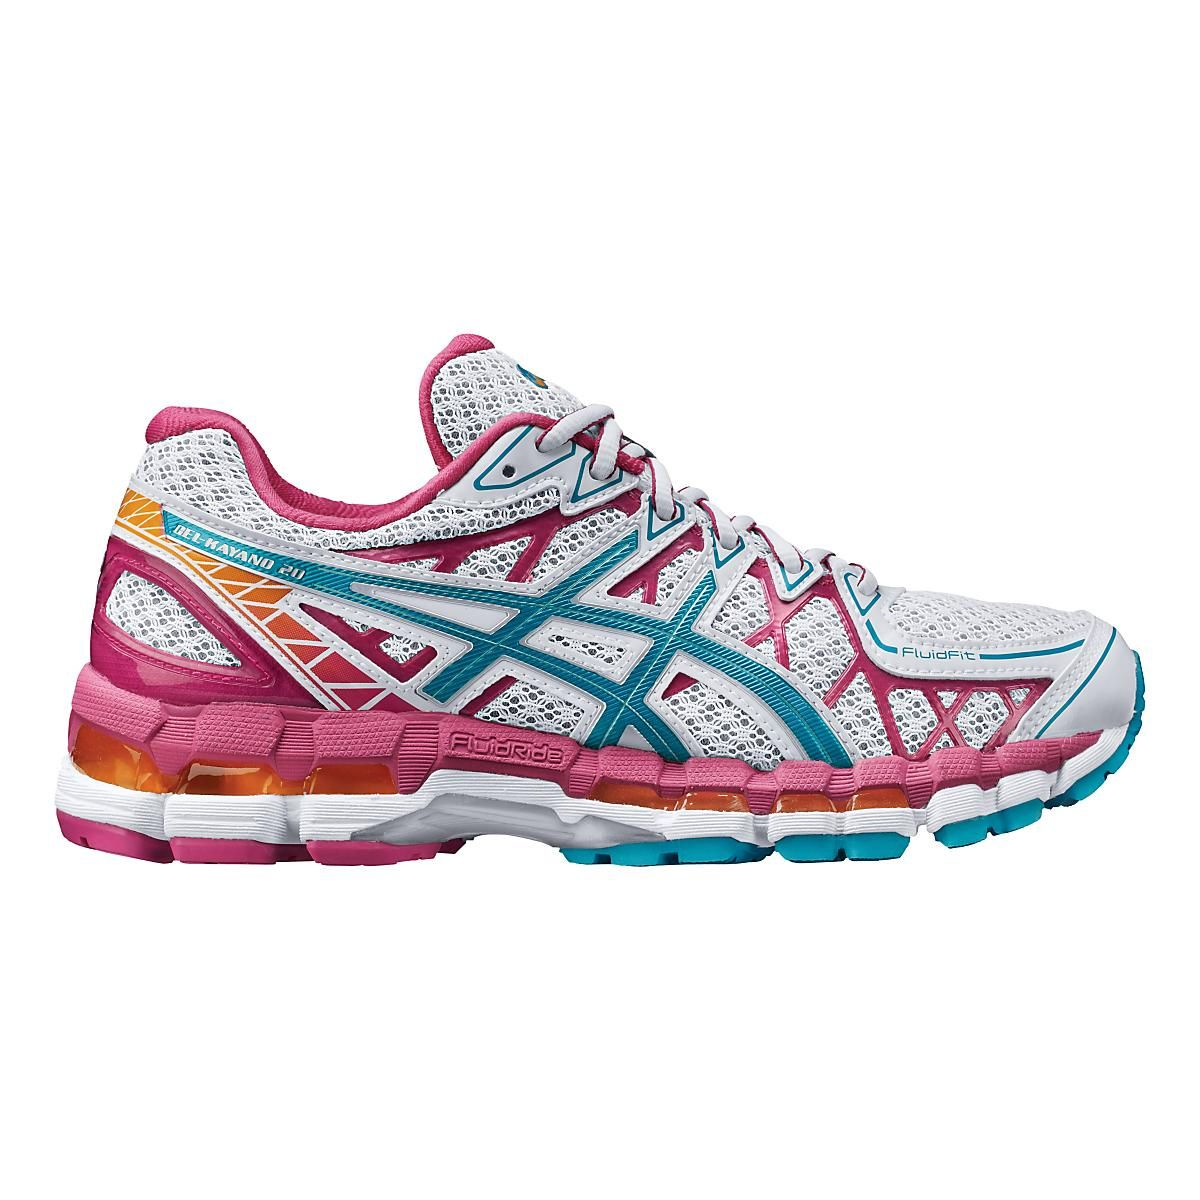 Just when you thought the legendary Womens ASICS GEL